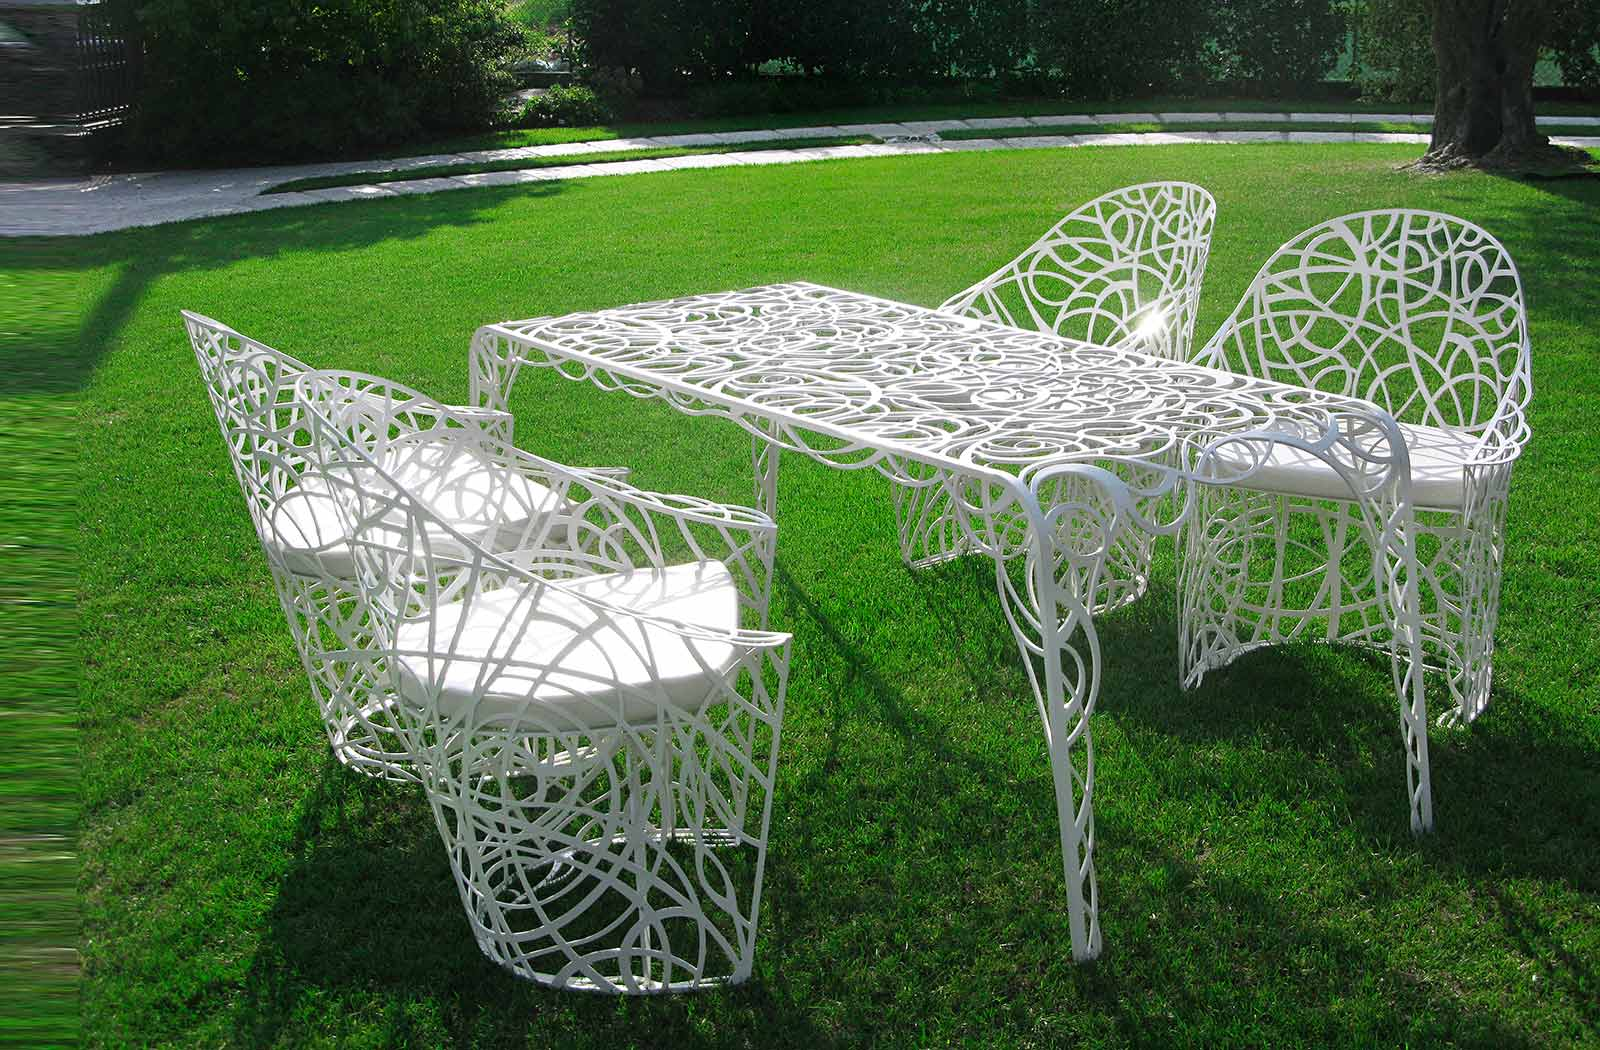 Amazing outdoor furniture radici by de castelli digsdigs for Cool outdoor furniture ideas